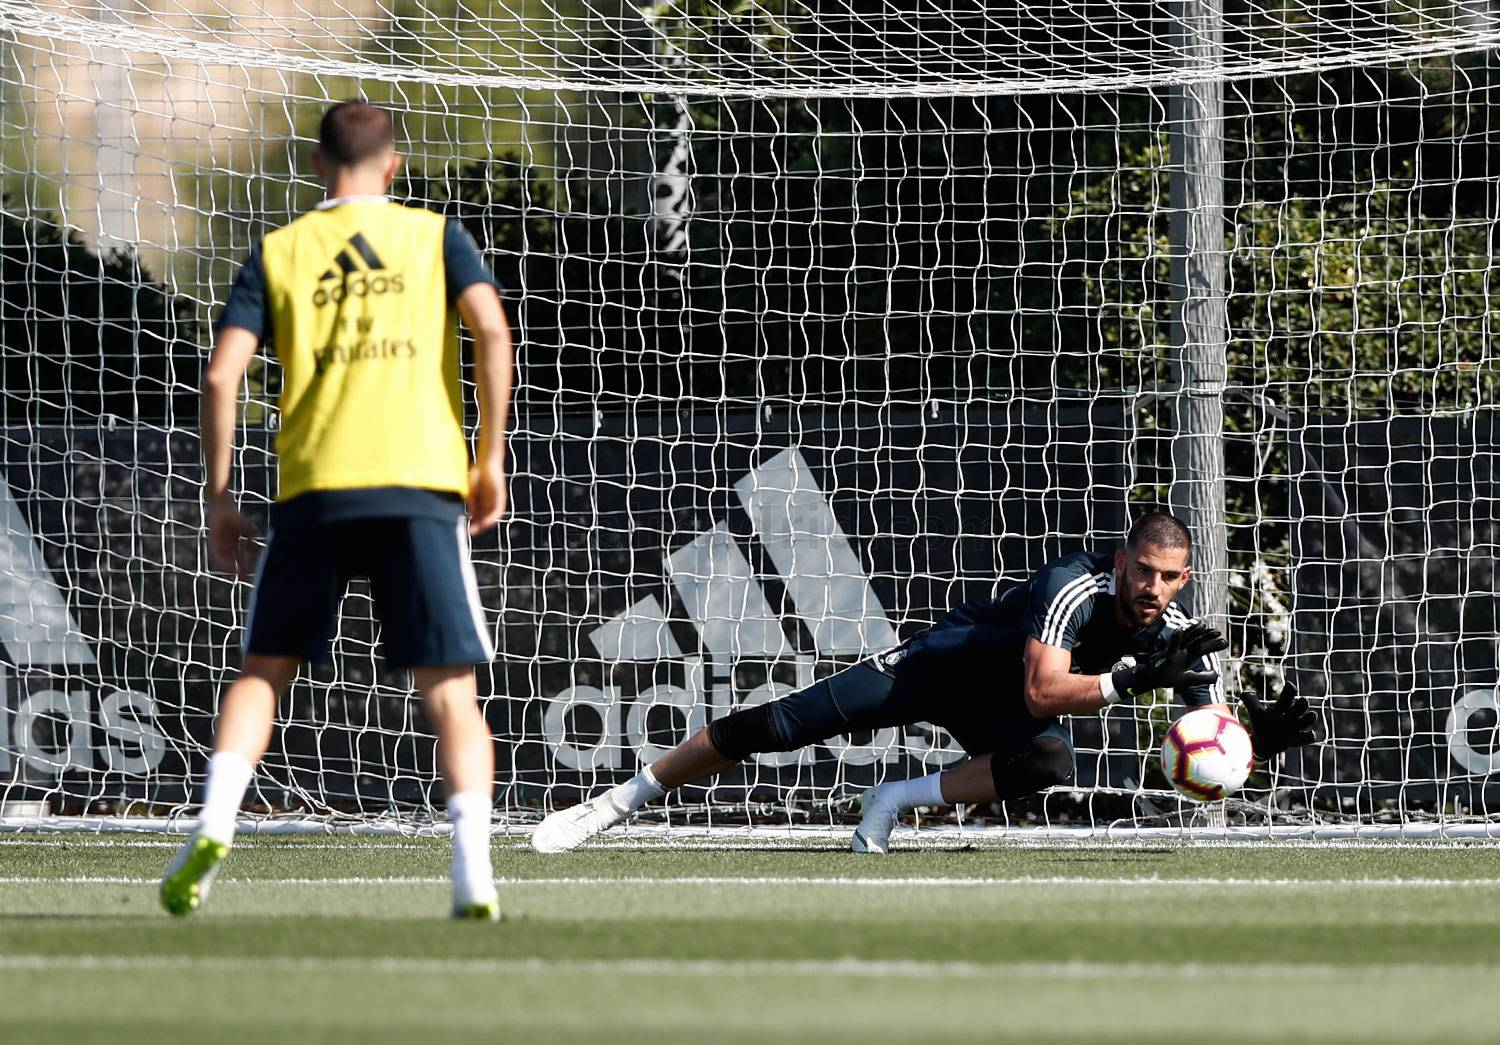 Real Madrid - Entrenamiento del Real Madrid - 17-07-2018